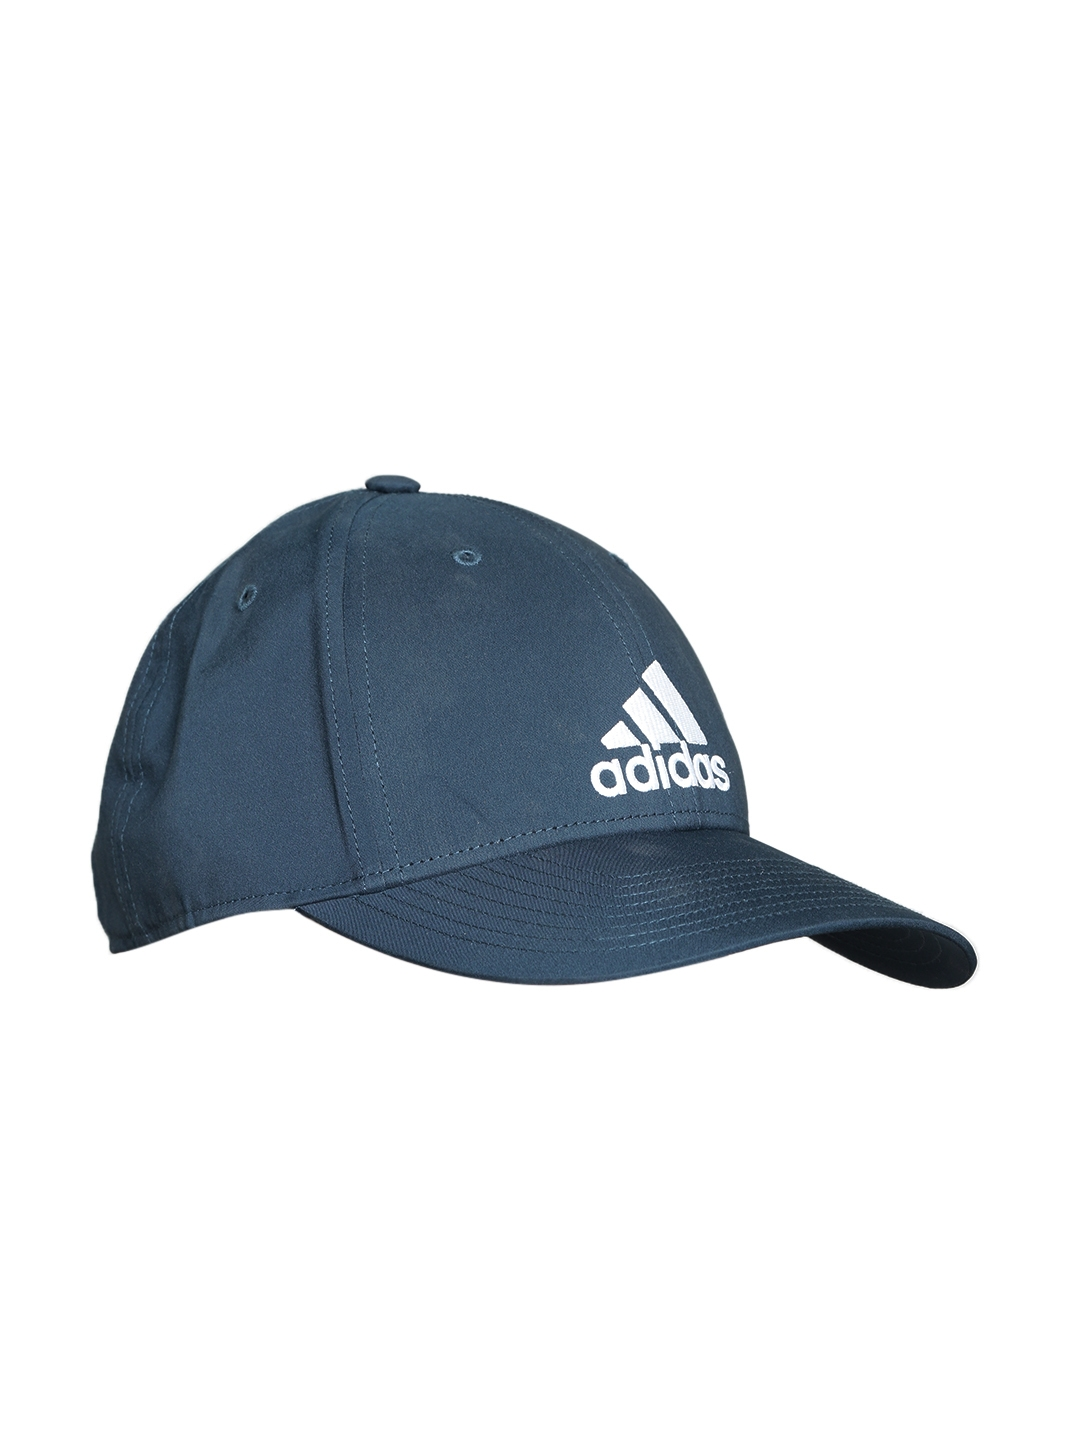 Buy ADIDAS Unisex Navy 6 Panel LightWeight Solid Cap - Caps for ... 60be0e209e8